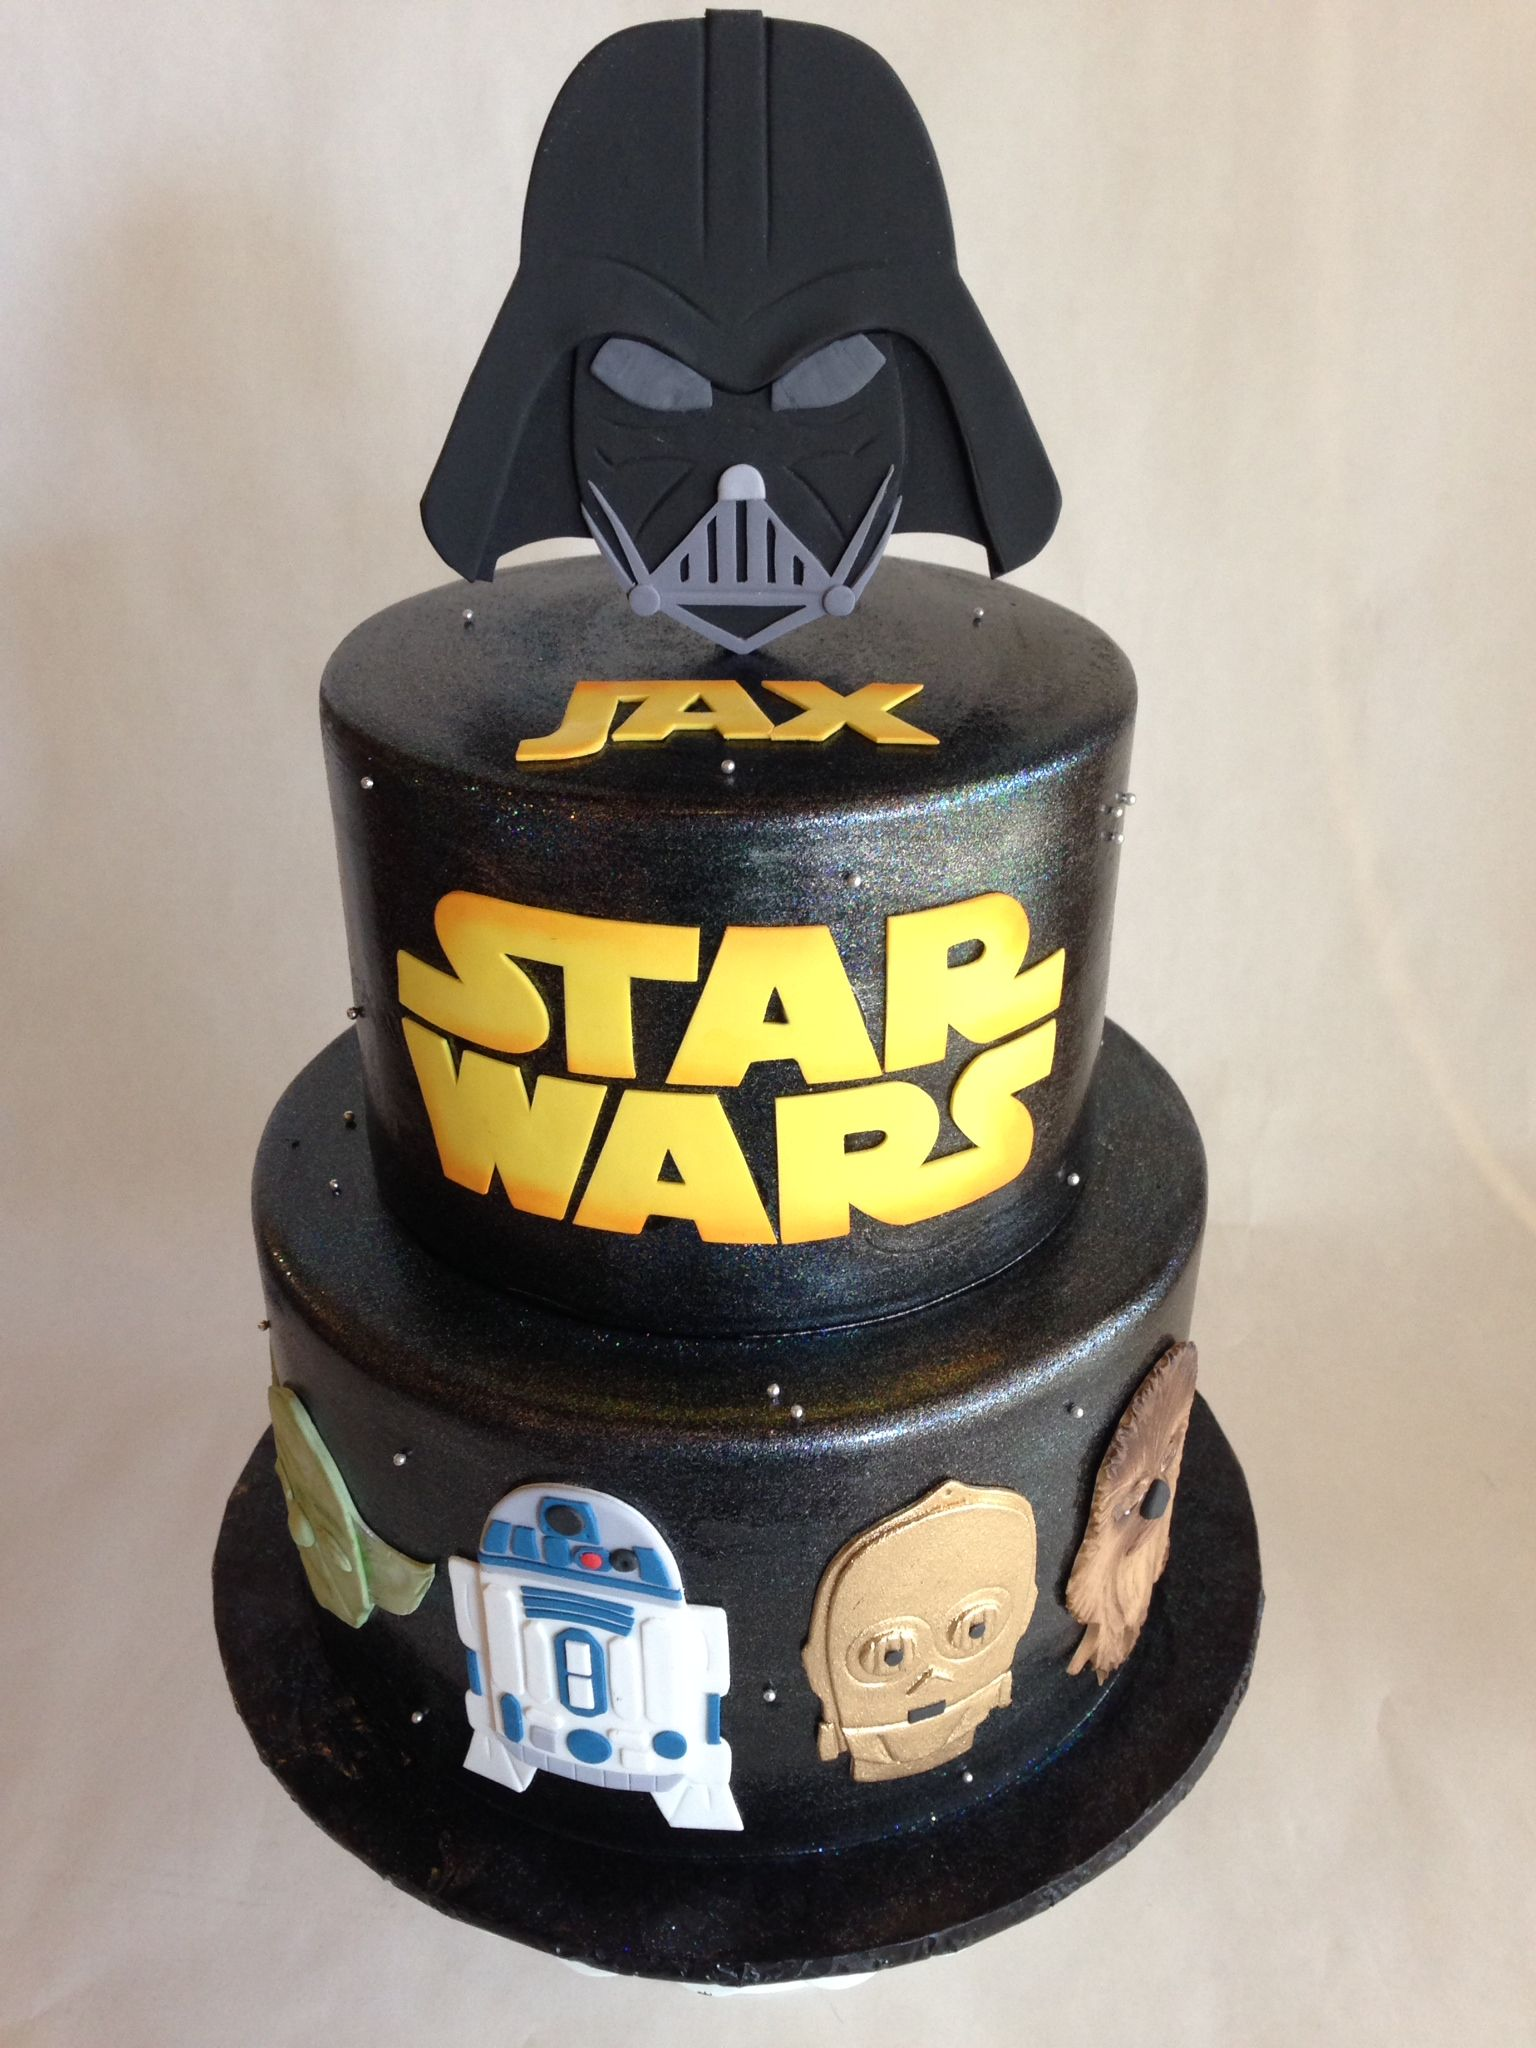 Birthday Cake Star Wars Fondant Darth Vader R2d2 Yoda C3po